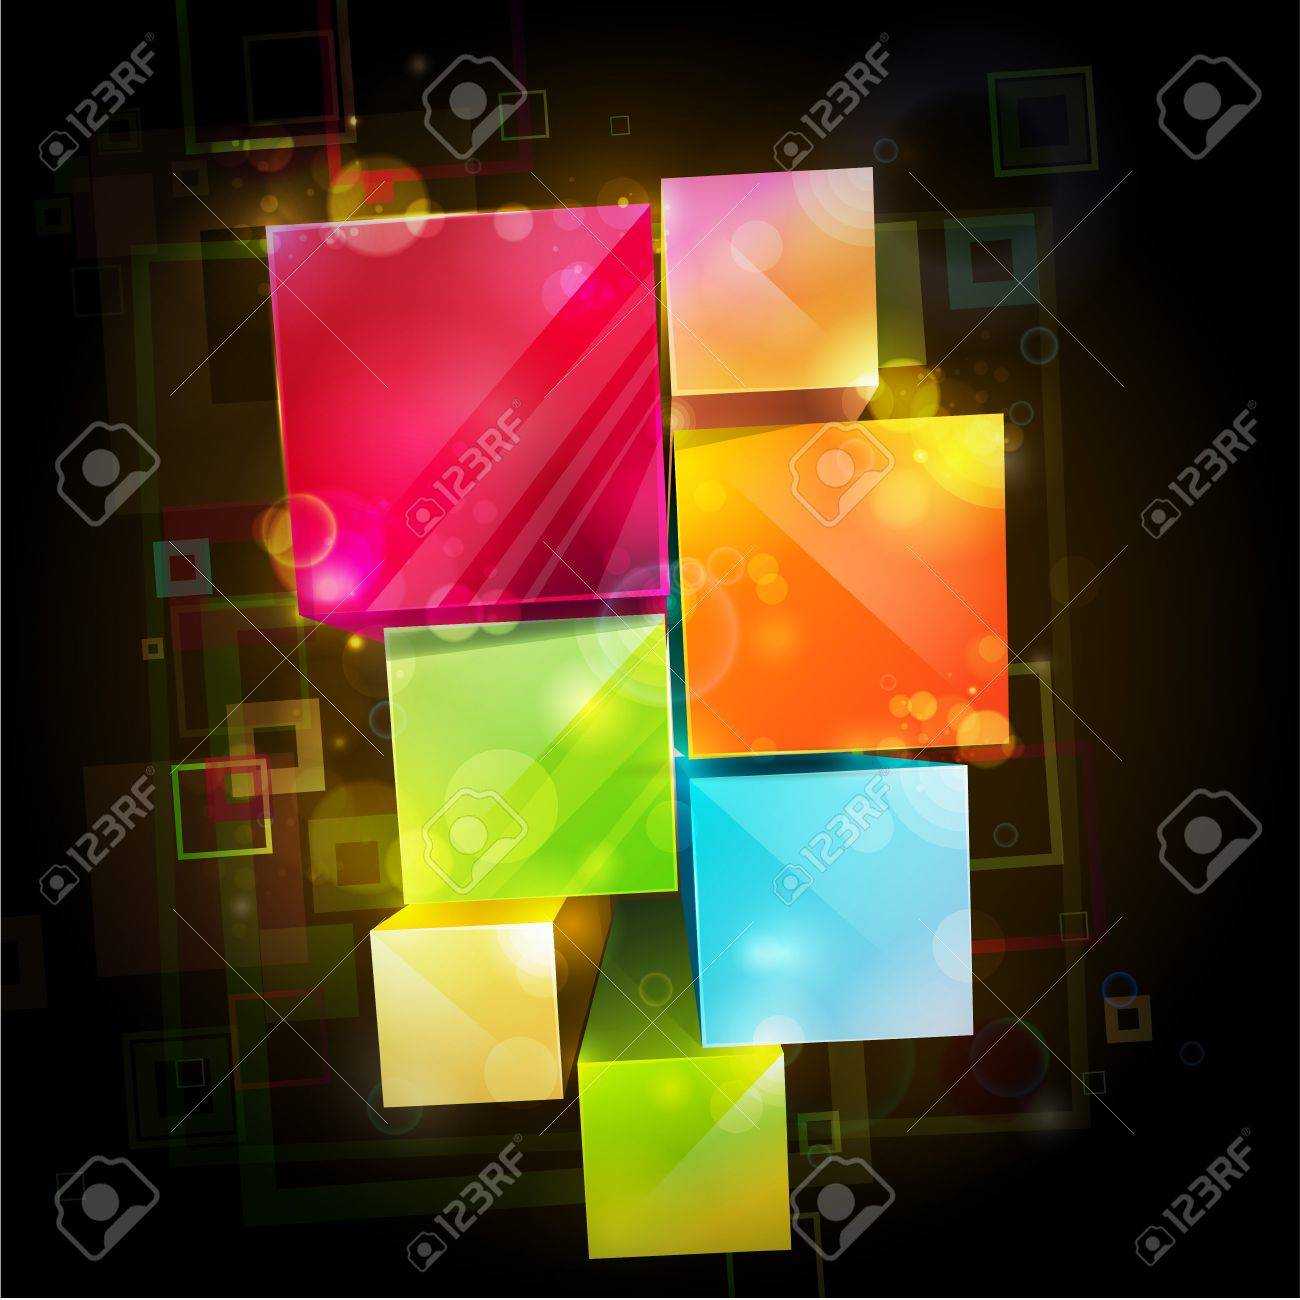 Abstract Background Vector - 11587304